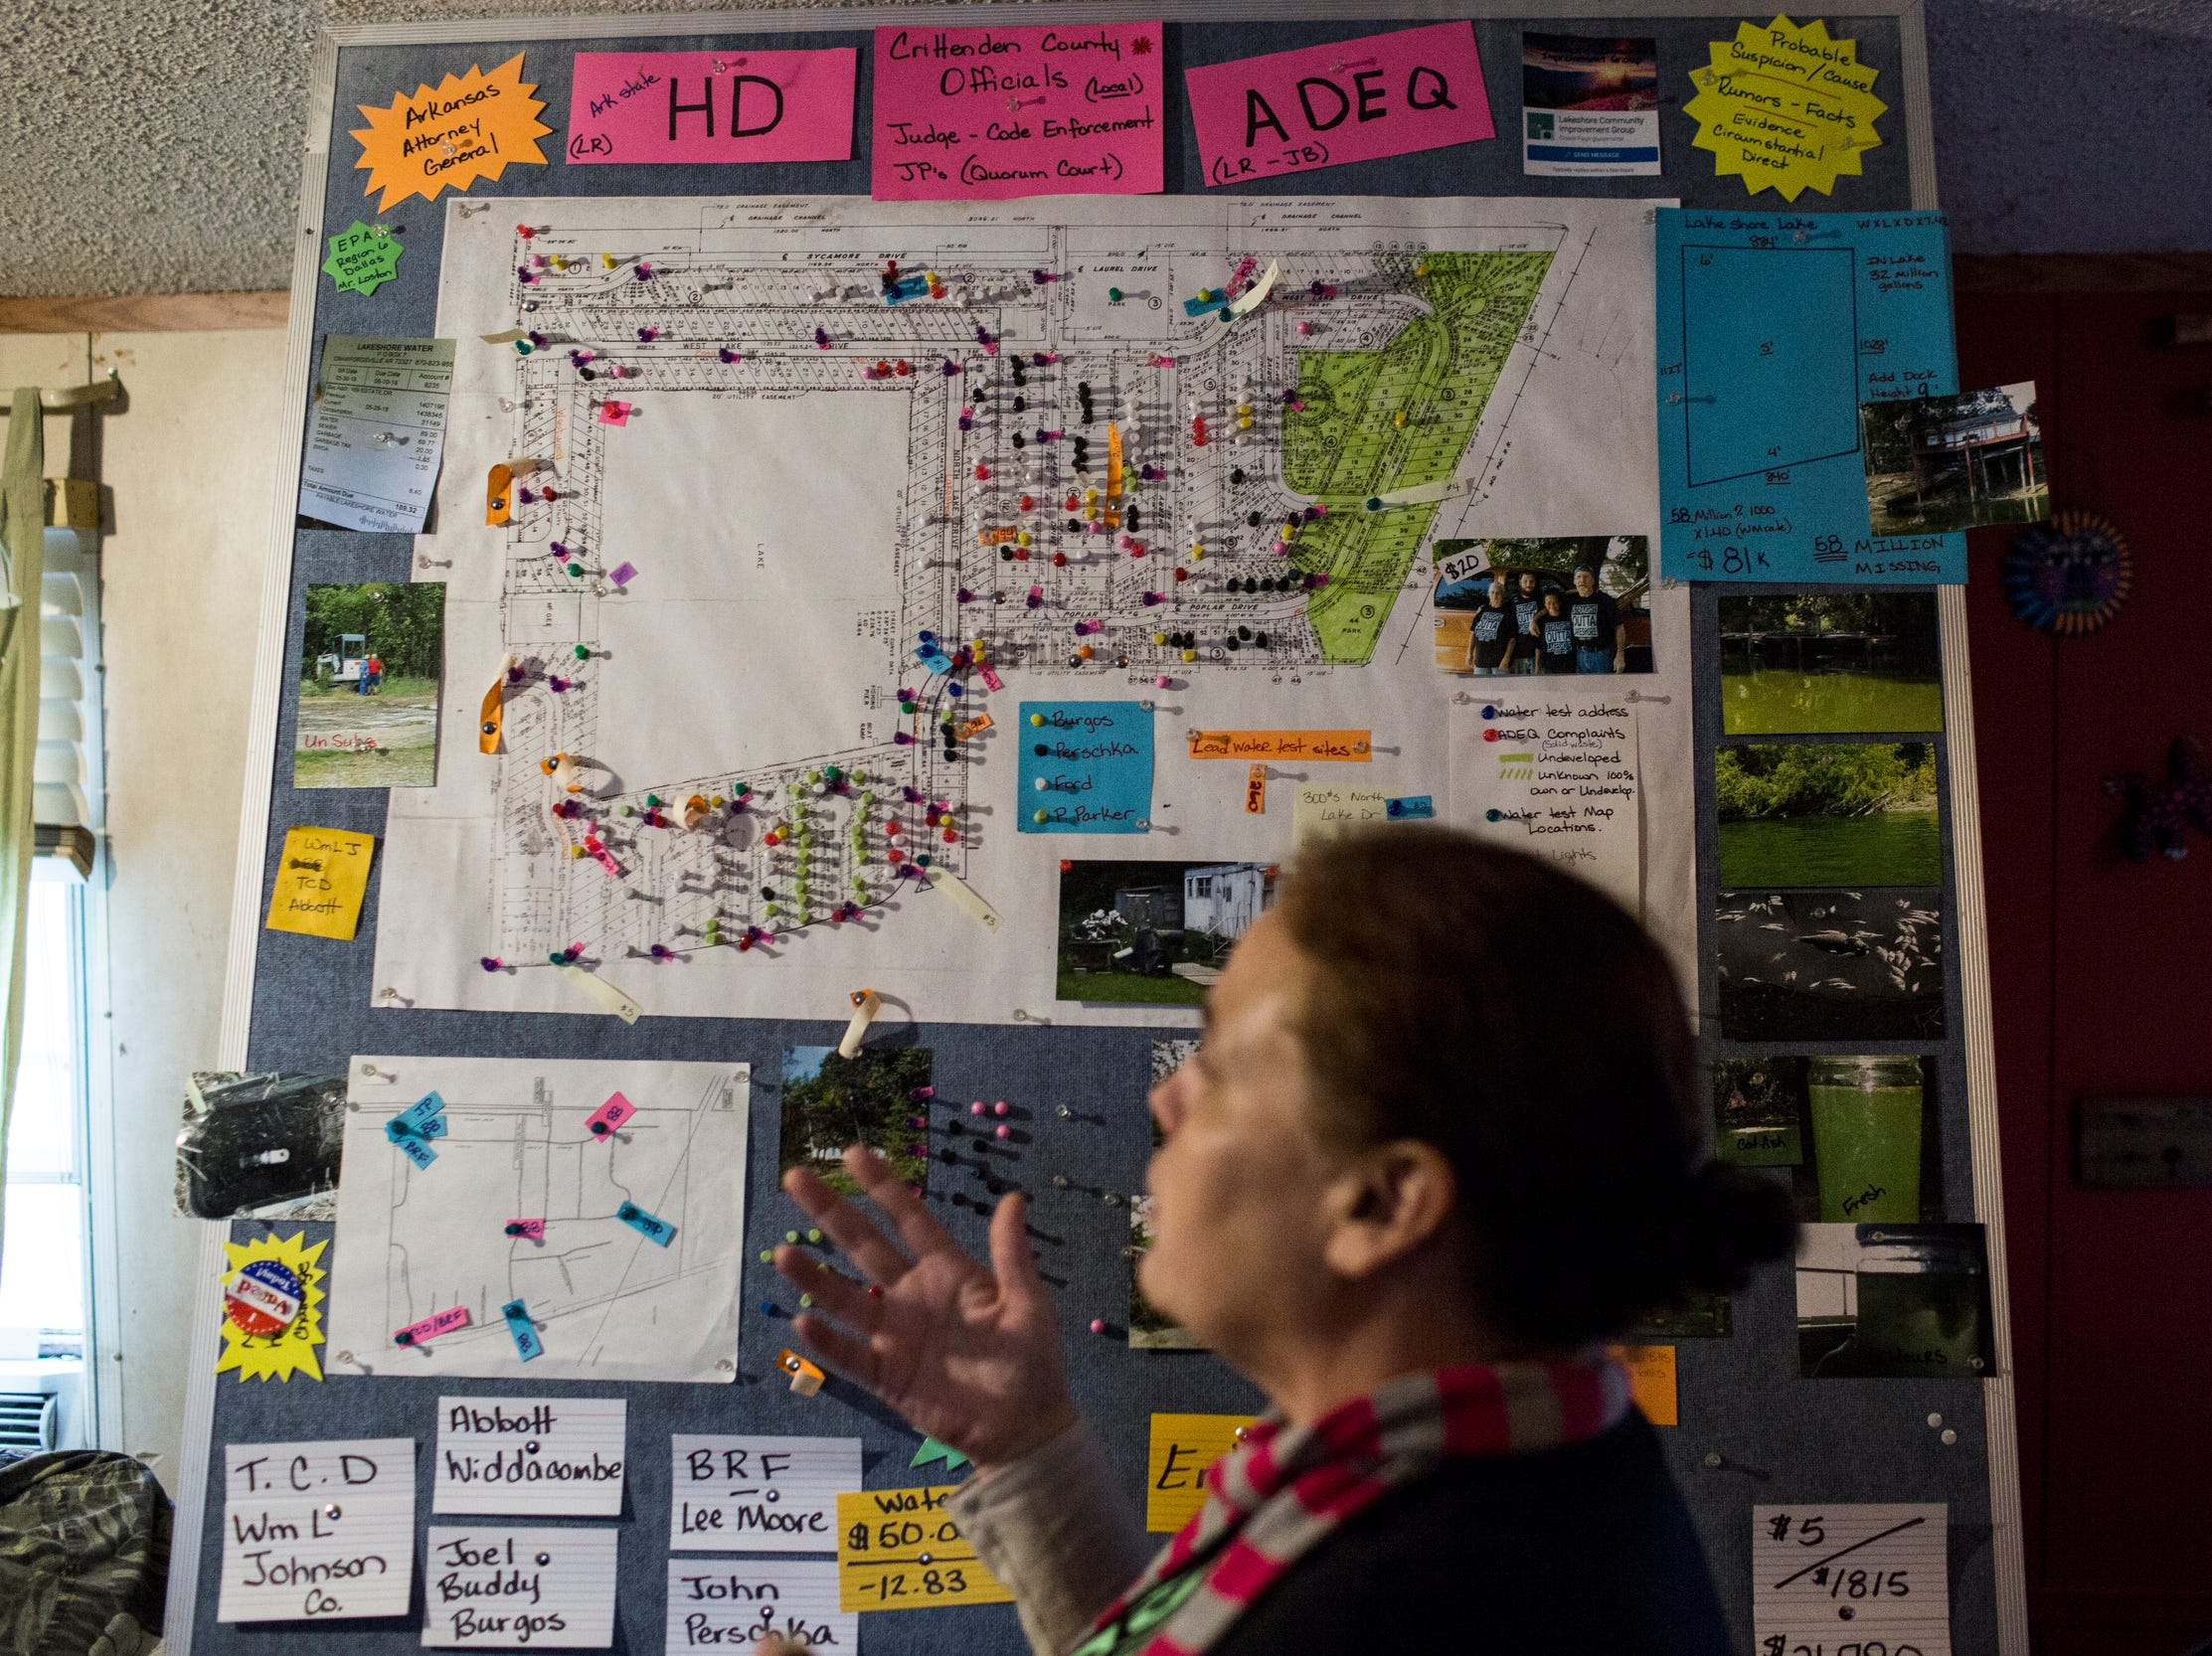 January 23, 2019 - Cassandra Meyer, co-chair of the Lakeshore Community Improvement Group, talks about information on a board that she and members of the group have gathered about their neighborhood.